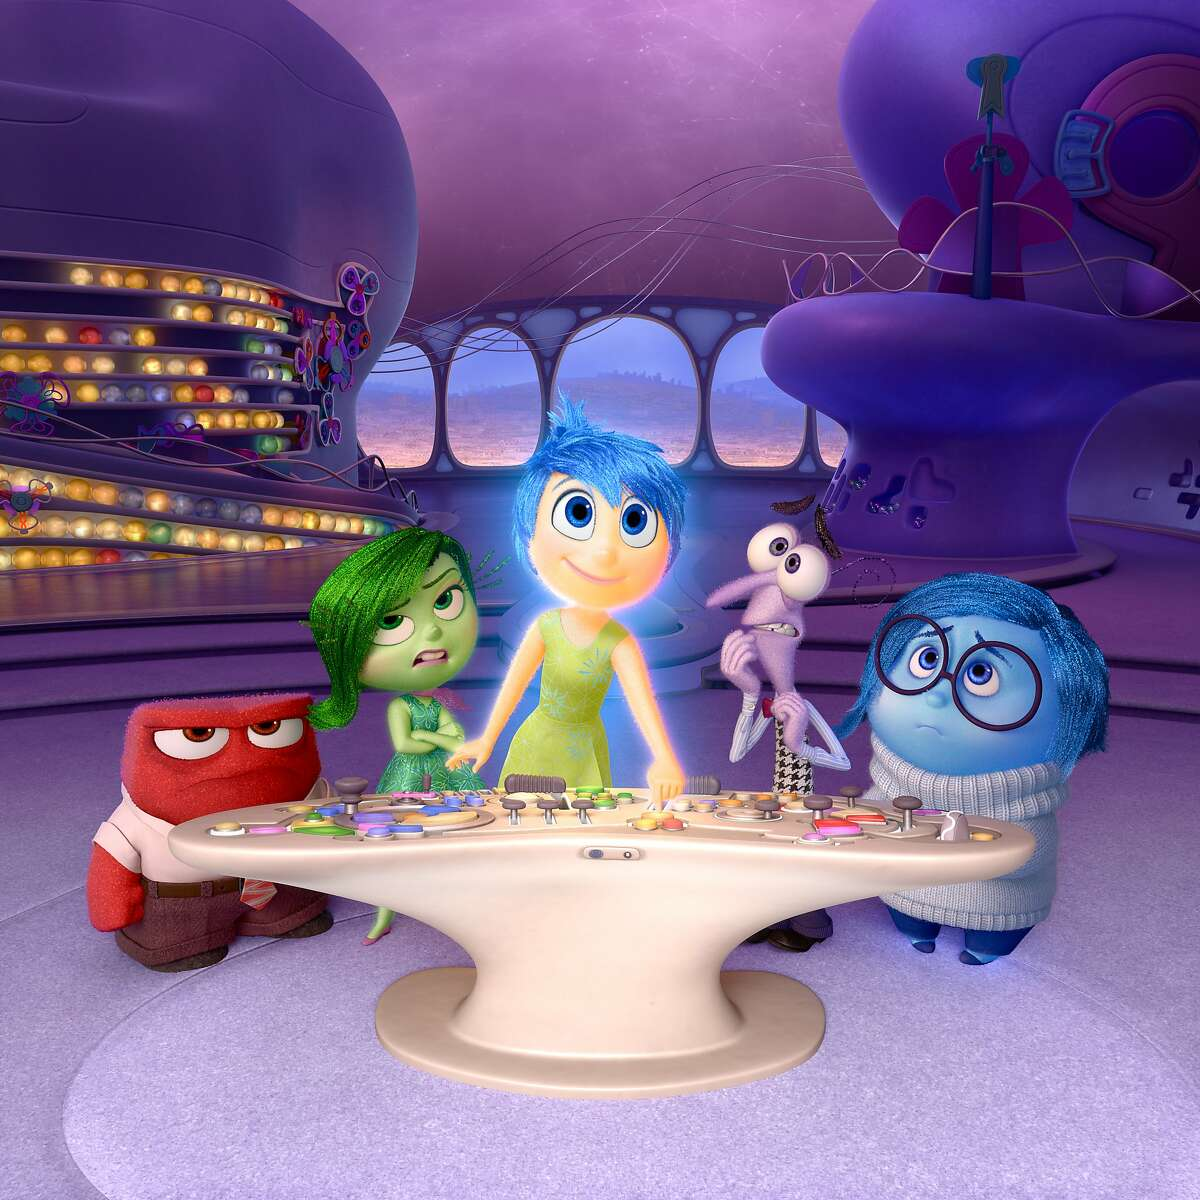 A woman has sued Disney, claiming Pixar stole the idea for